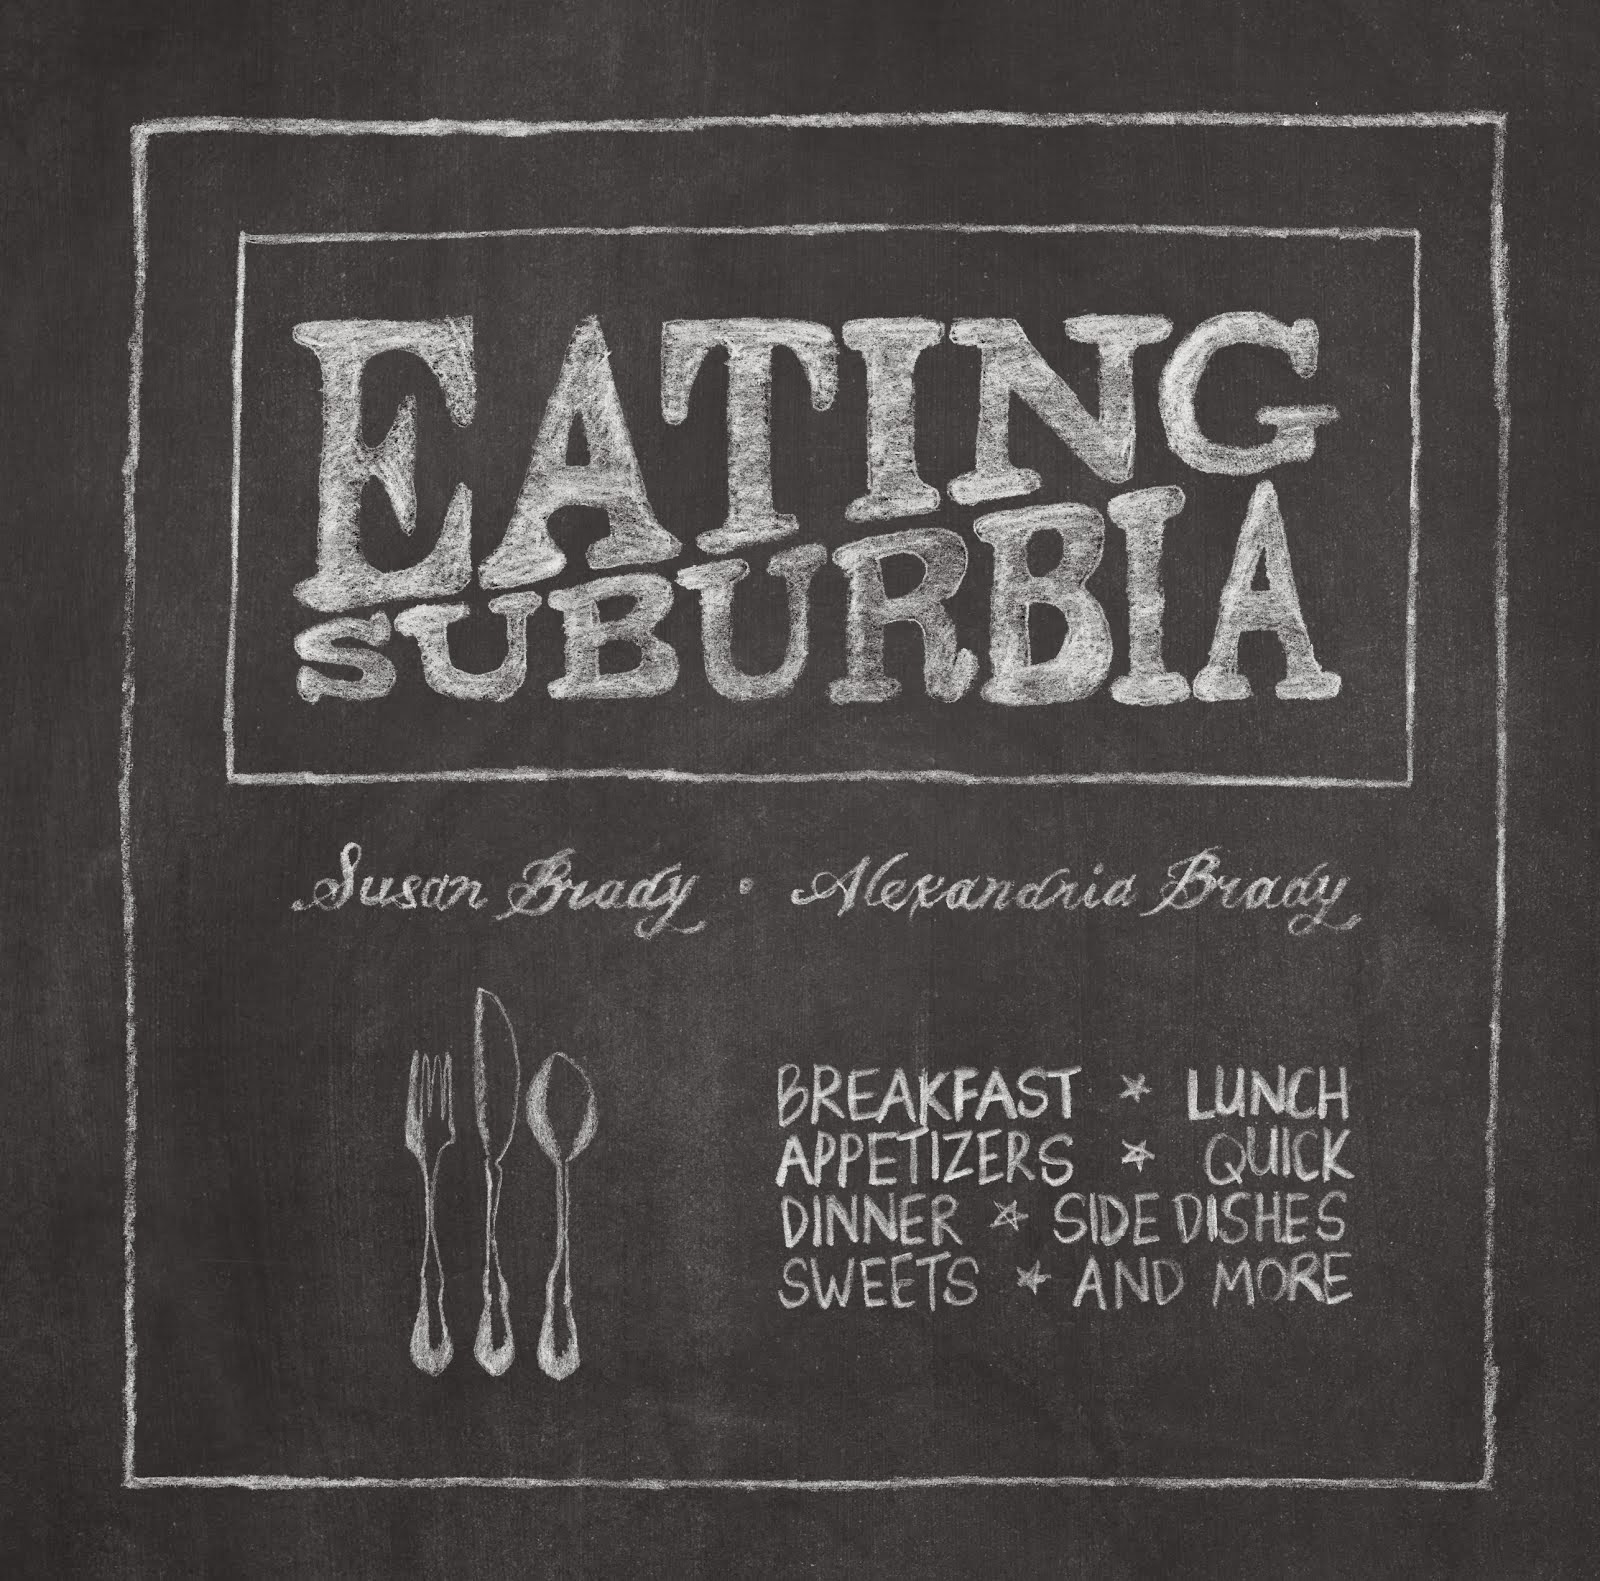 Eating Suburbia Cookbook Now Available!